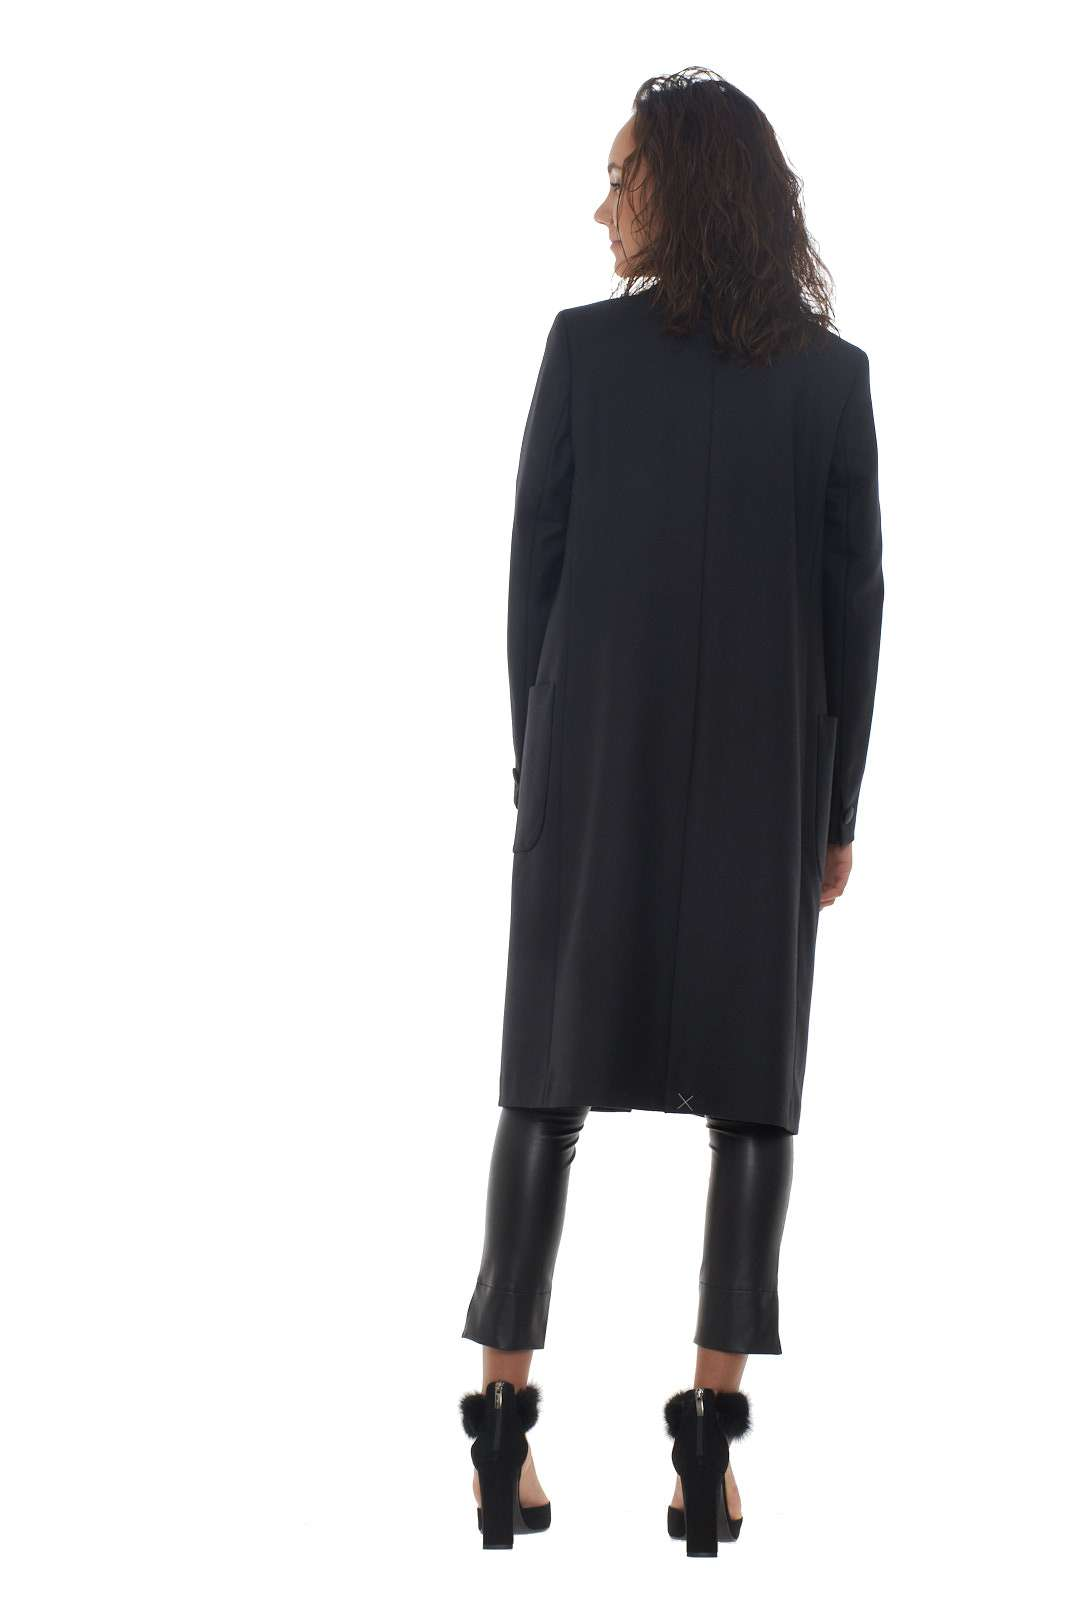 https://www.parmax.com/media/catalog/product/a/i/AI-outlet_parmax-cappotto-donna-Dondup-DJ278%20PX0065D-C.jpg